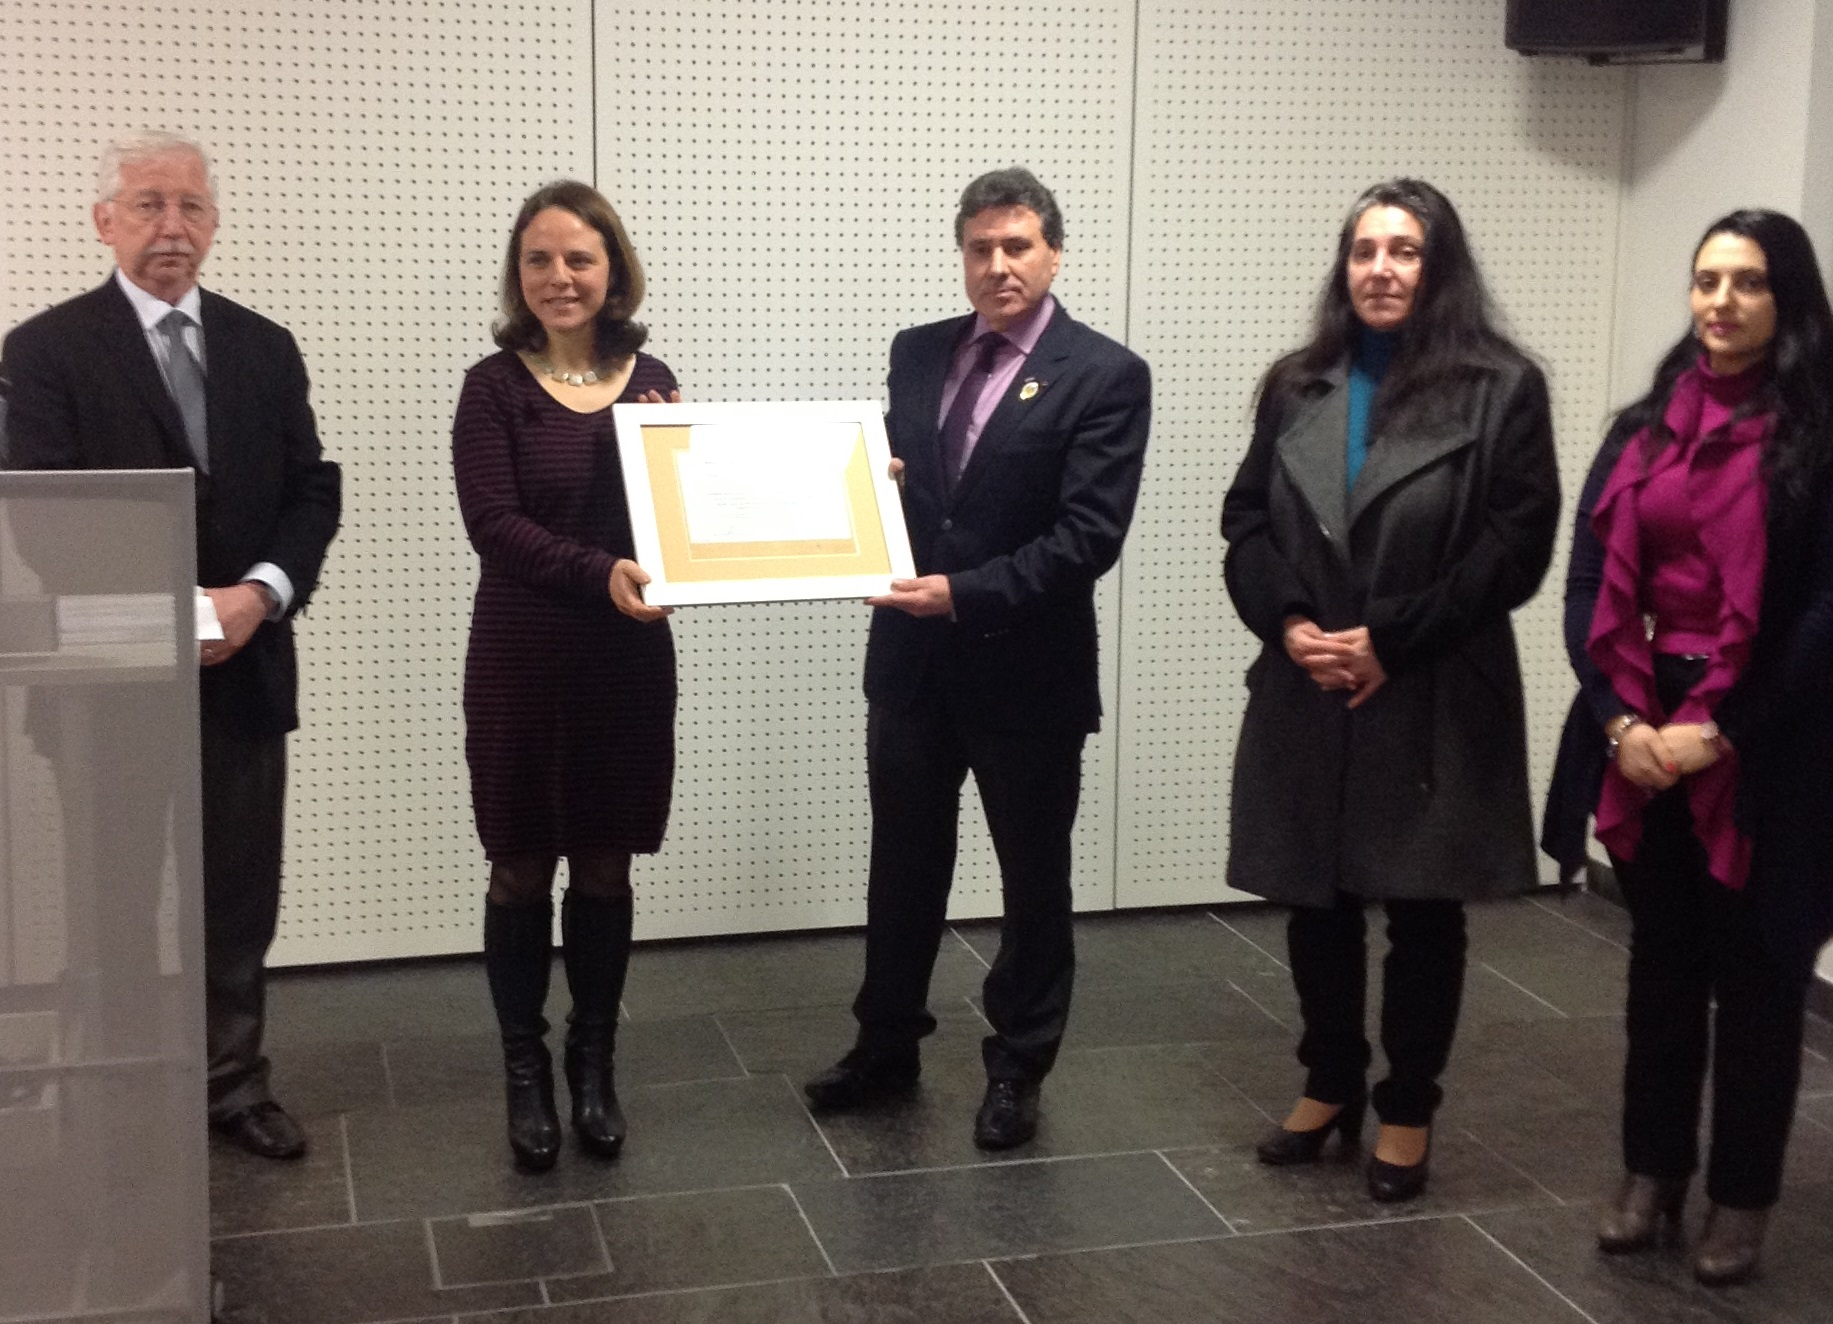 remise du prix du m rite du b n volat 2013 b n volat luxembourg. Black Bedroom Furniture Sets. Home Design Ideas